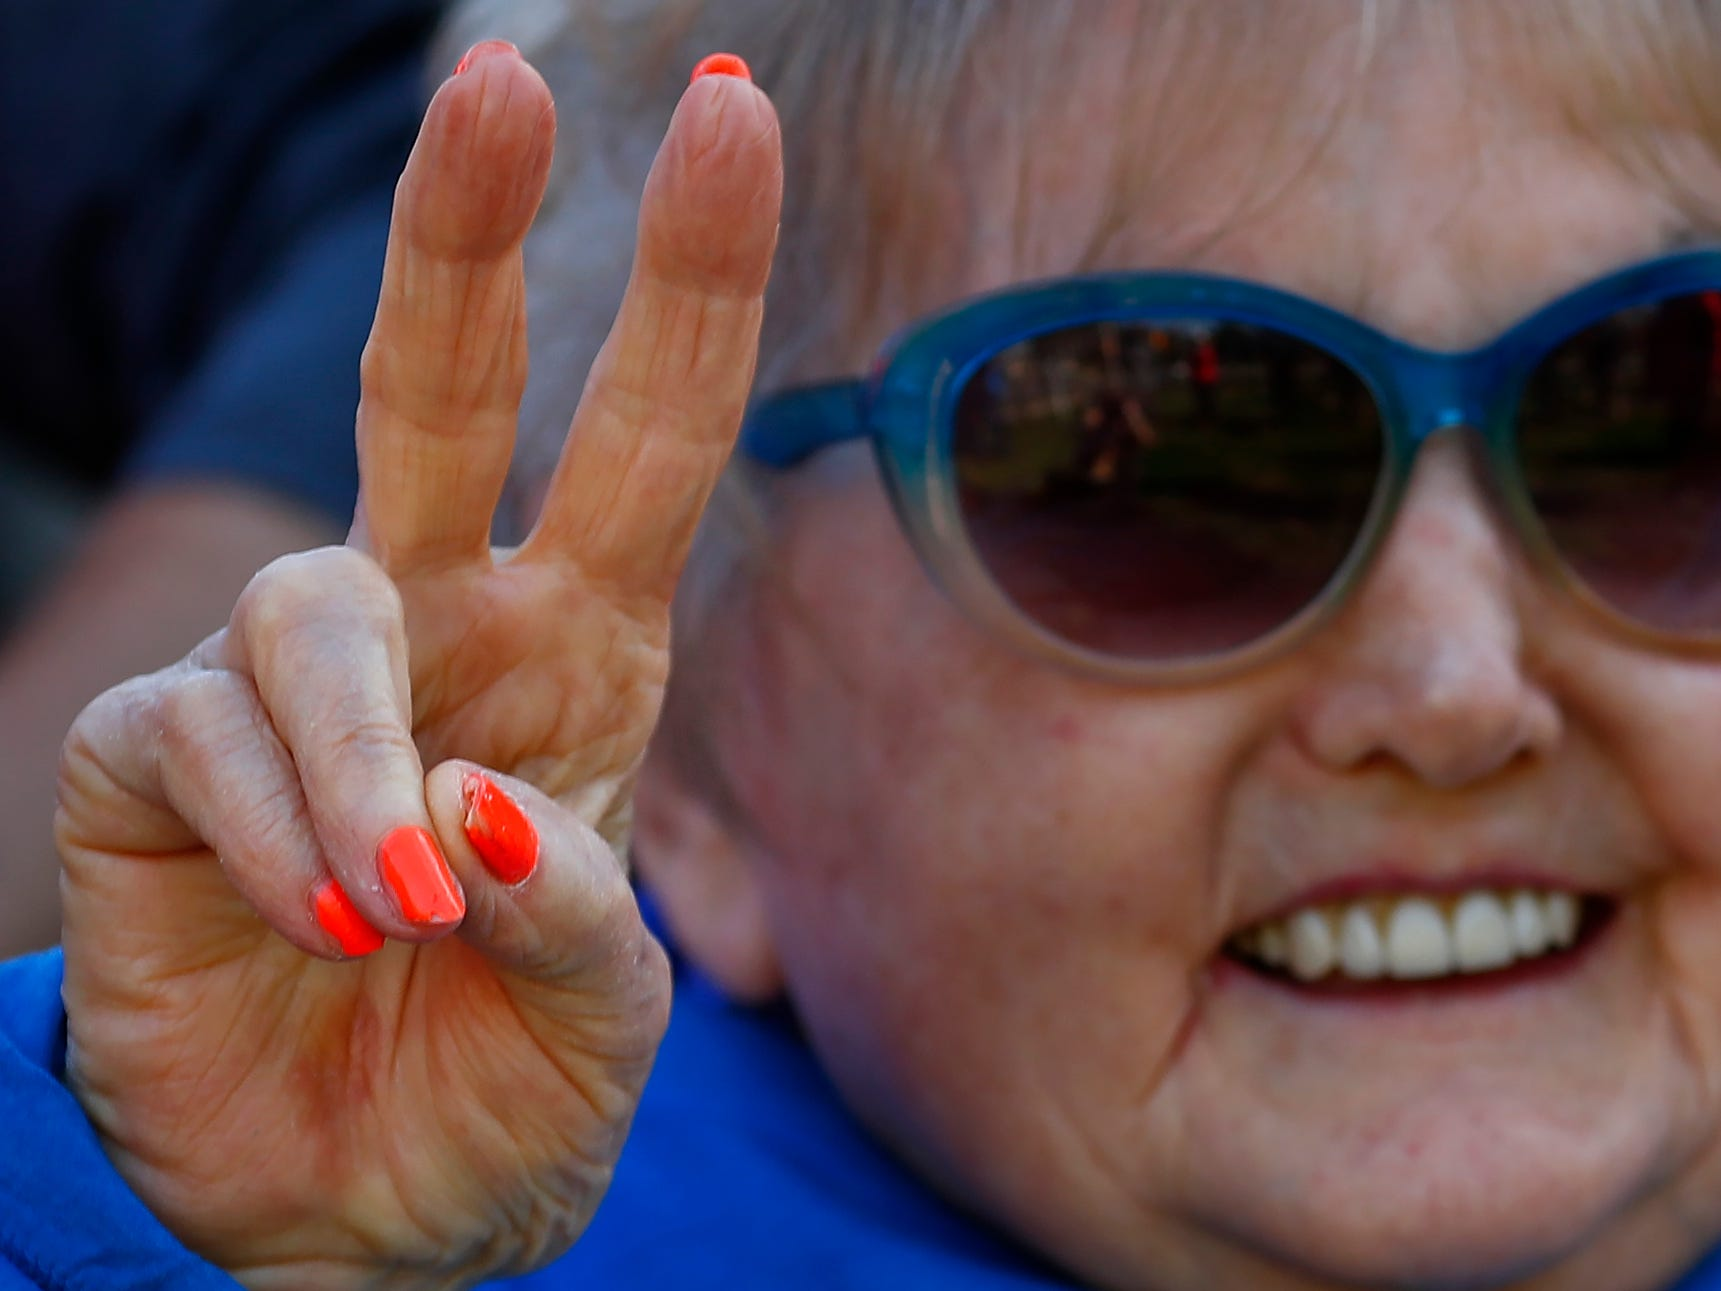 Holocaust survivor Eva Kor wears orange fingernail polish, as she smiles and joins others at the end, Wednesday, Oct. 24, 2018, of the pace-setting run for the 2019 OneAmerica 500 Festival Mini-Marathon.  The 500 Festival will donate $1 to the CANDLES Holocaust Museum in Terre Haute for every mini-marathon participant who finishes the 2019 race in a better time than Team Eva, which was 2 hours, 7 minutes, 36 seconds.  Kor ran the very last part of the relay race to add to the time.